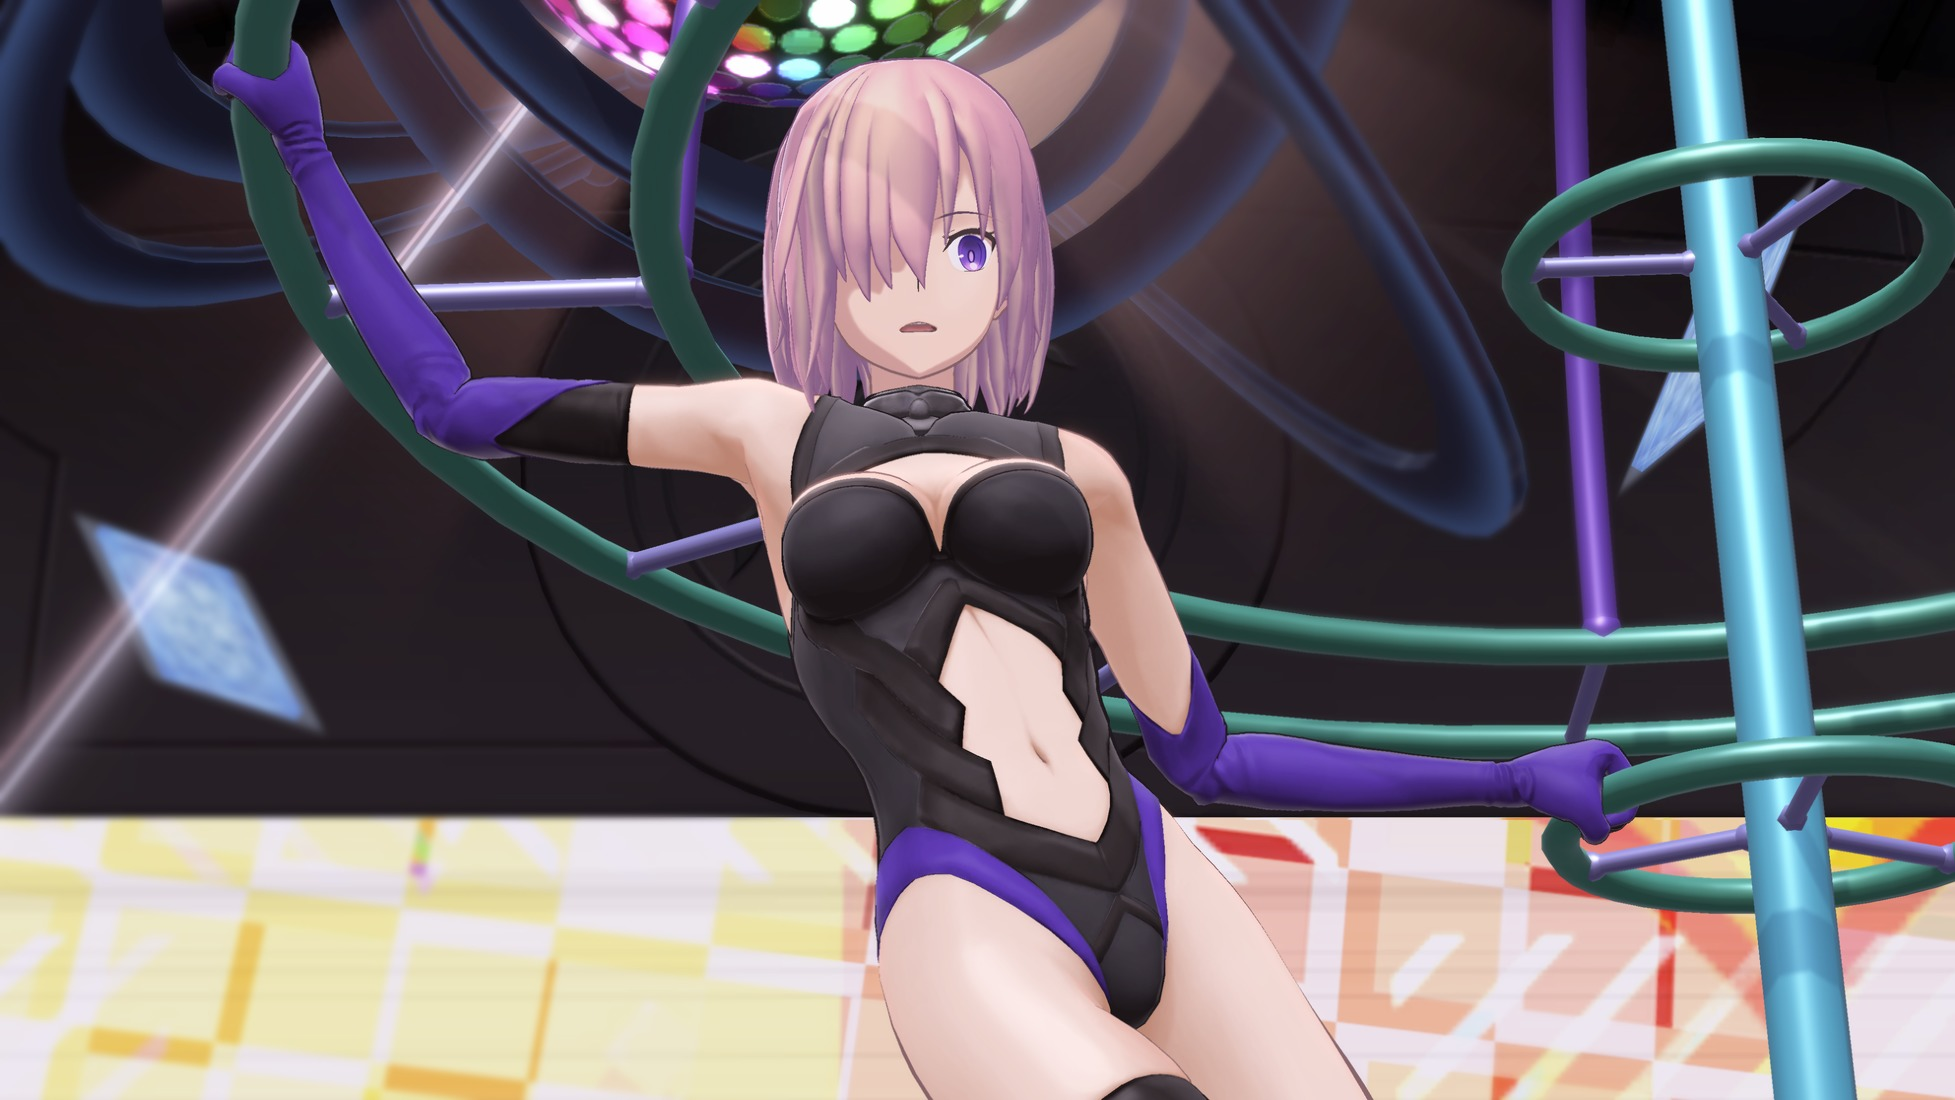 Fate/Grand Order VR Featuring Mashu Kyrielight - -